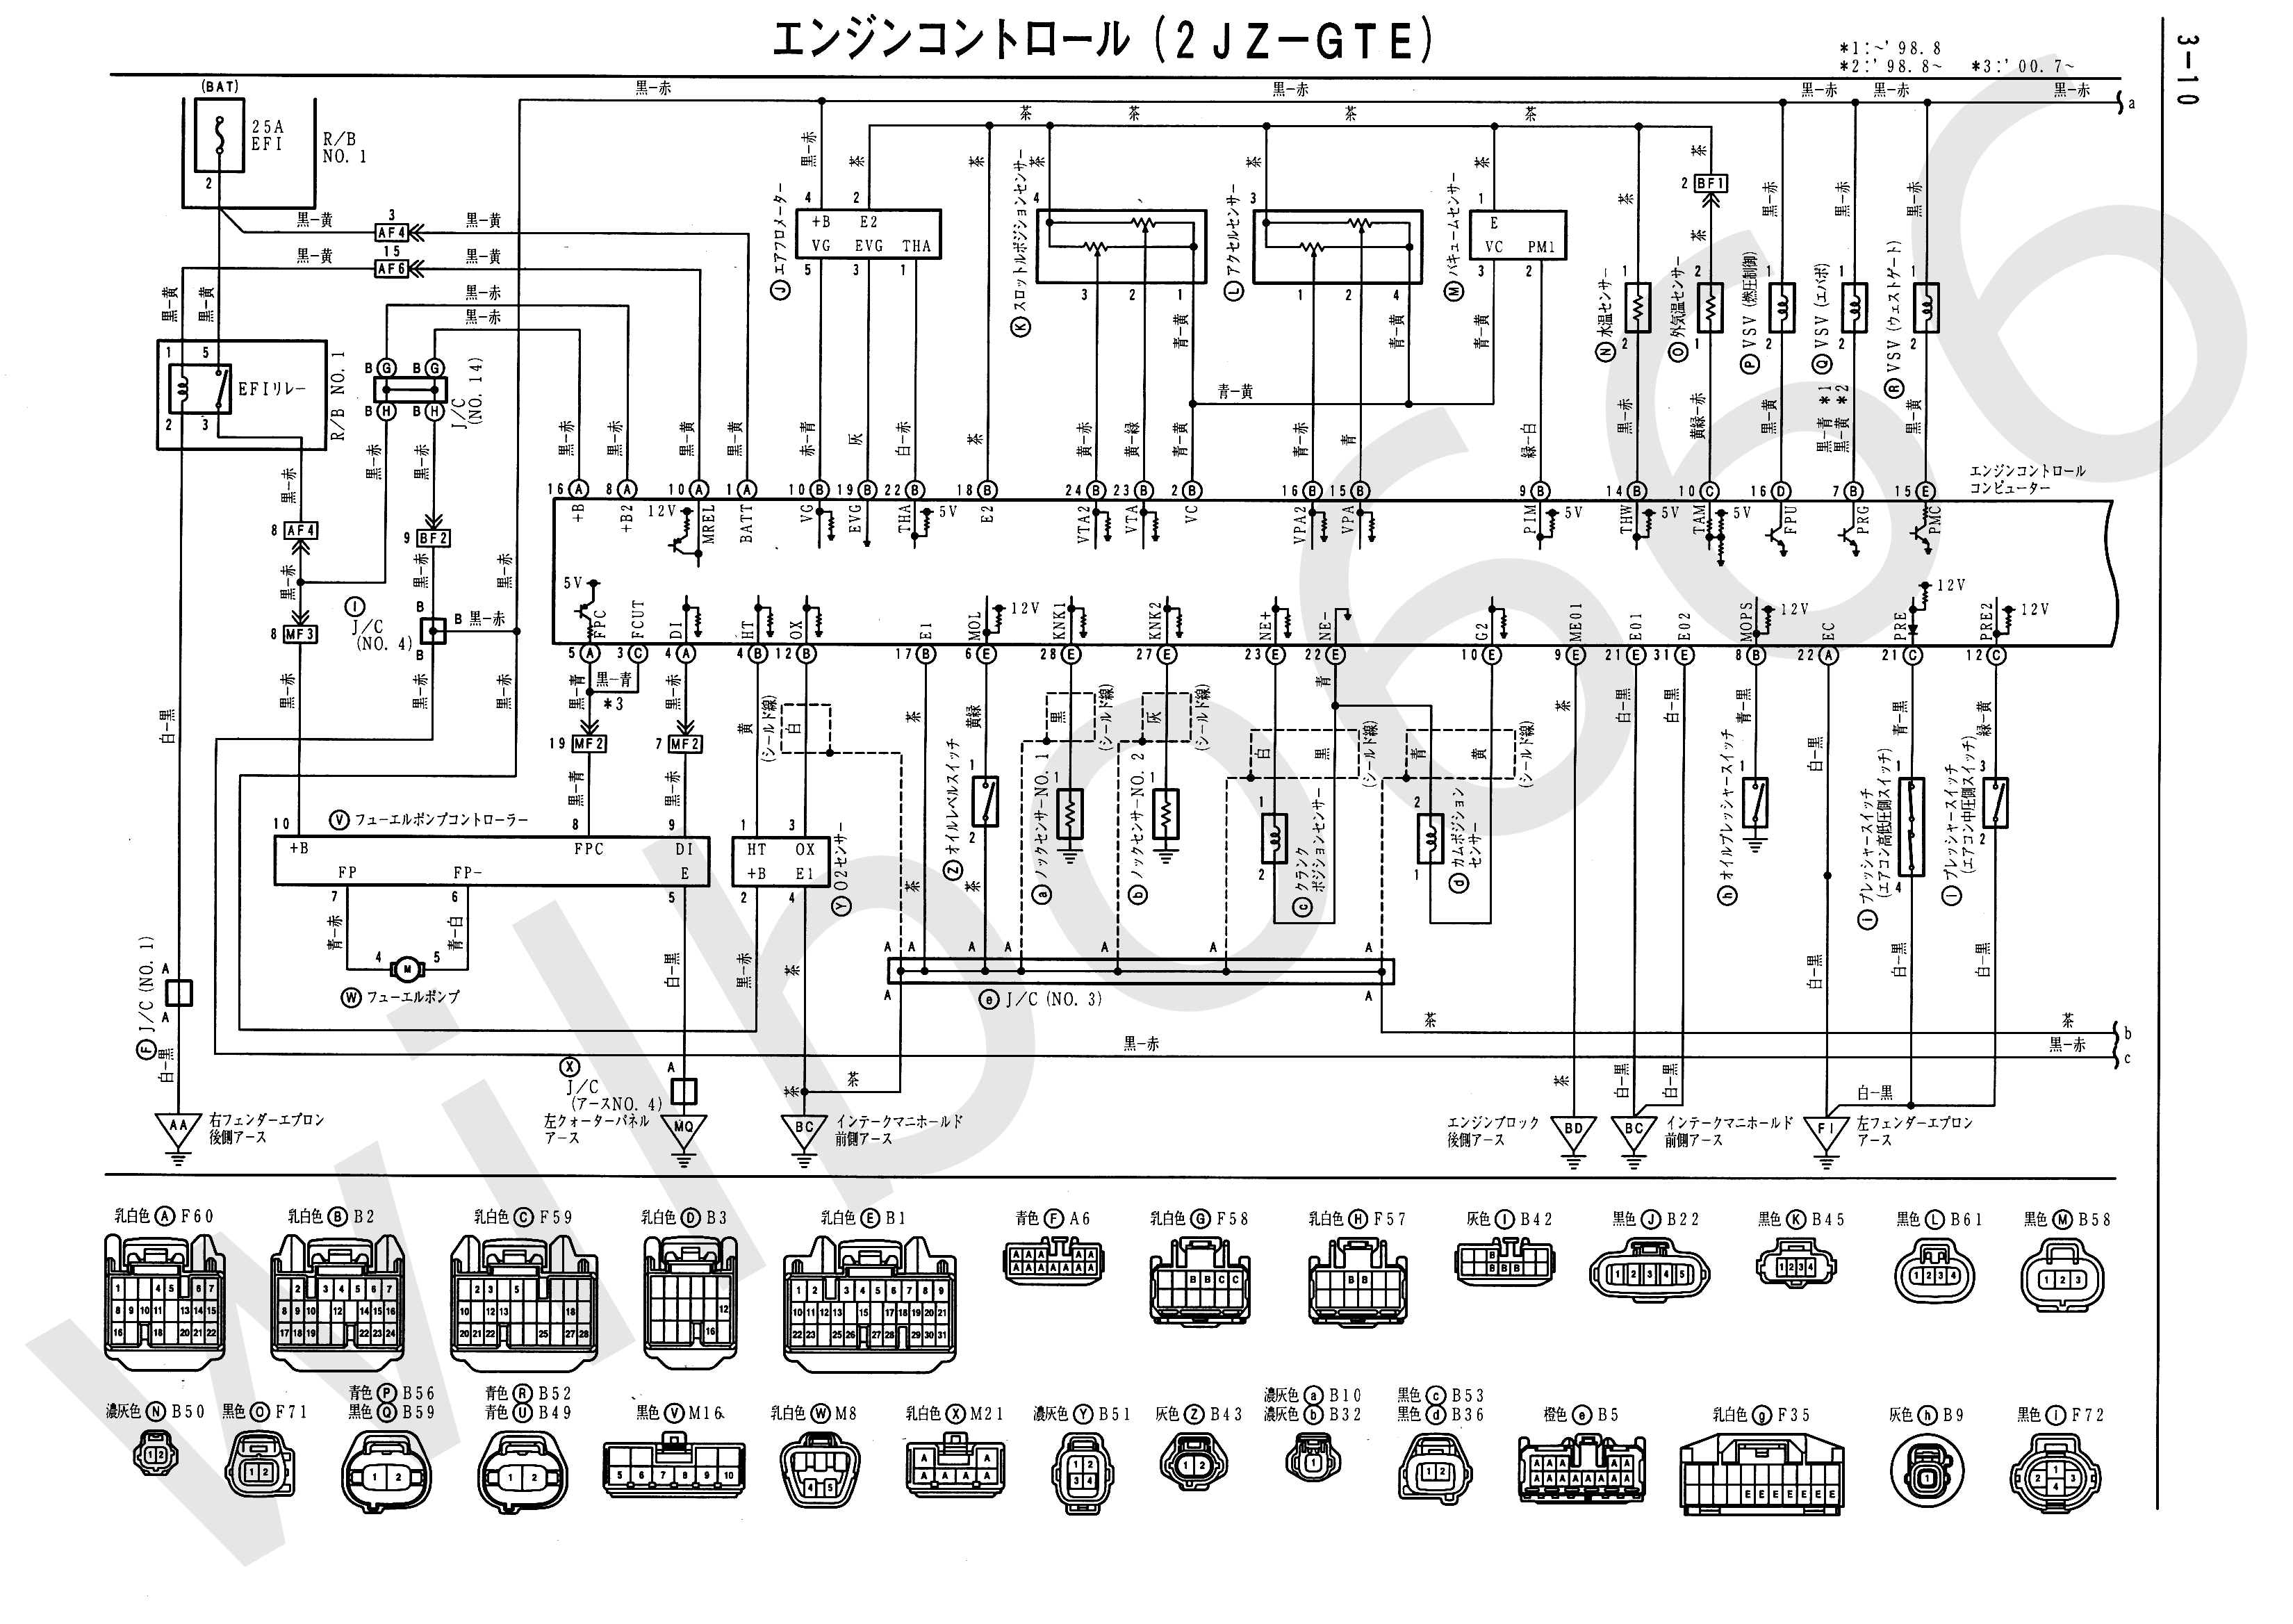 JZS161 Electrical Wiring Diagram 6748505 3 10 wilbo666 2jz gte vvti jzs161 aristo engine wiring 1jz gte wiring diagram pdf at reclaimingppi.co